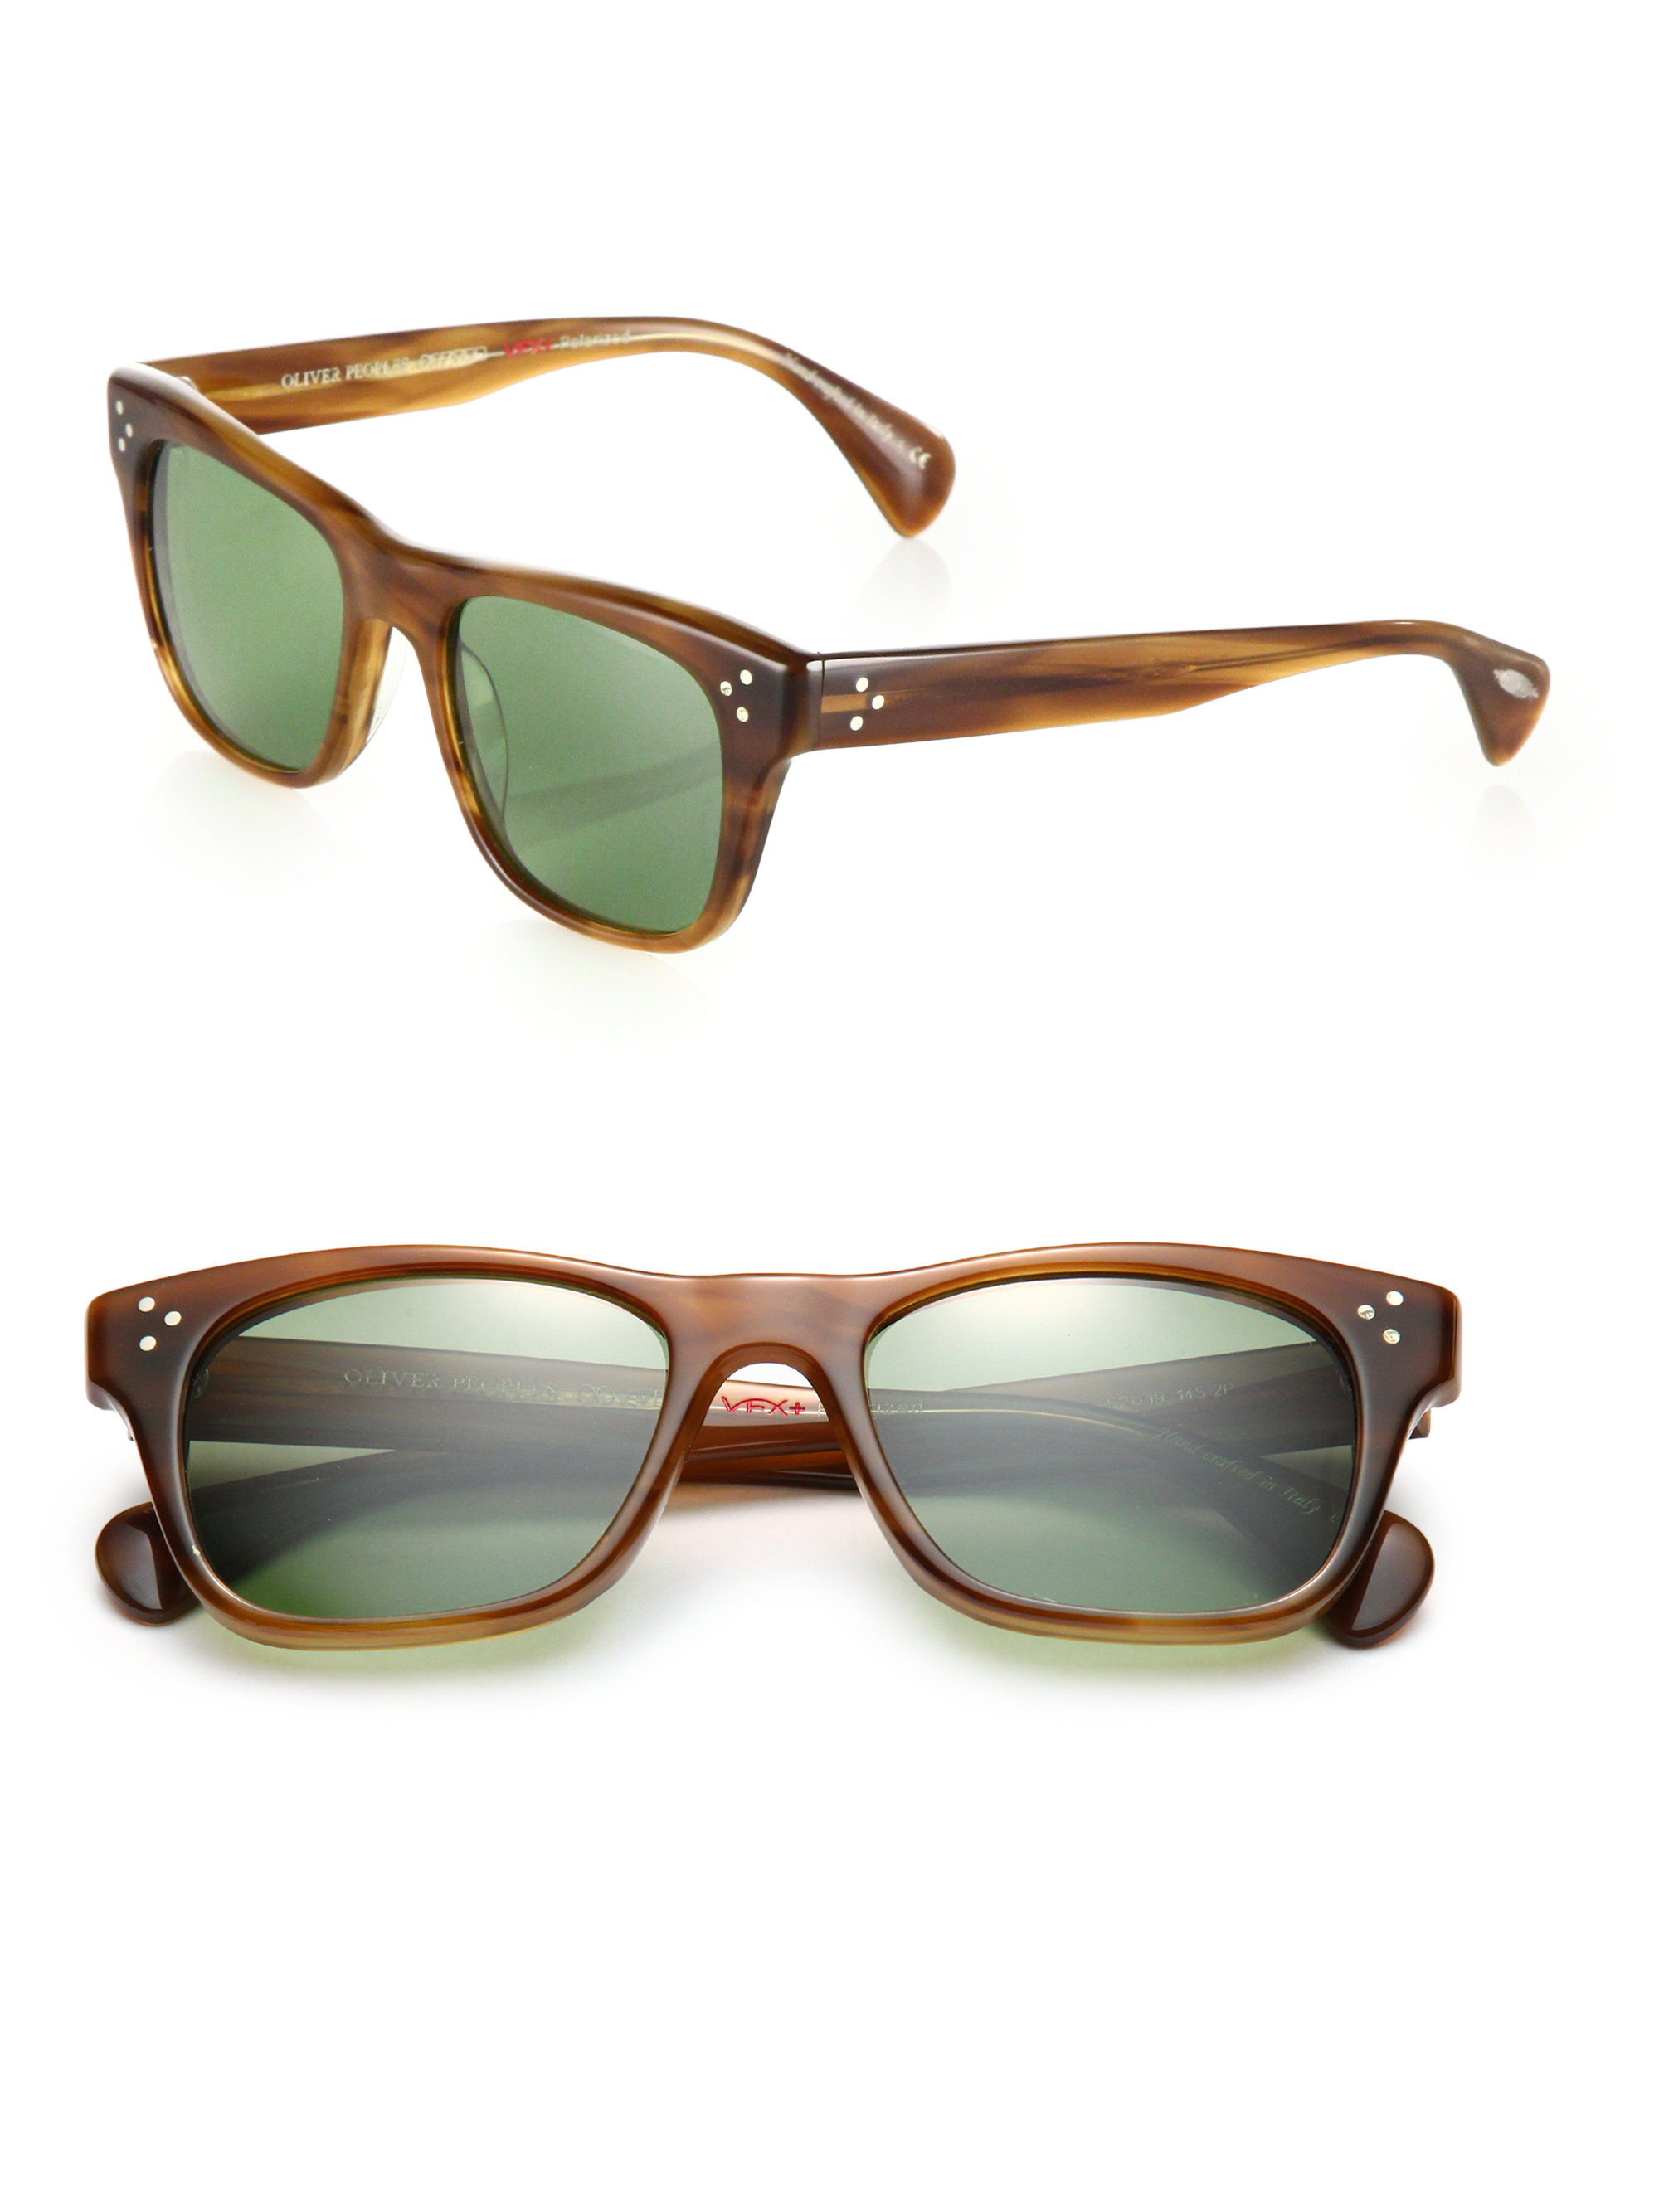 Oliver Peoples Jack Huston 52mm Square Sunglasses In Brown